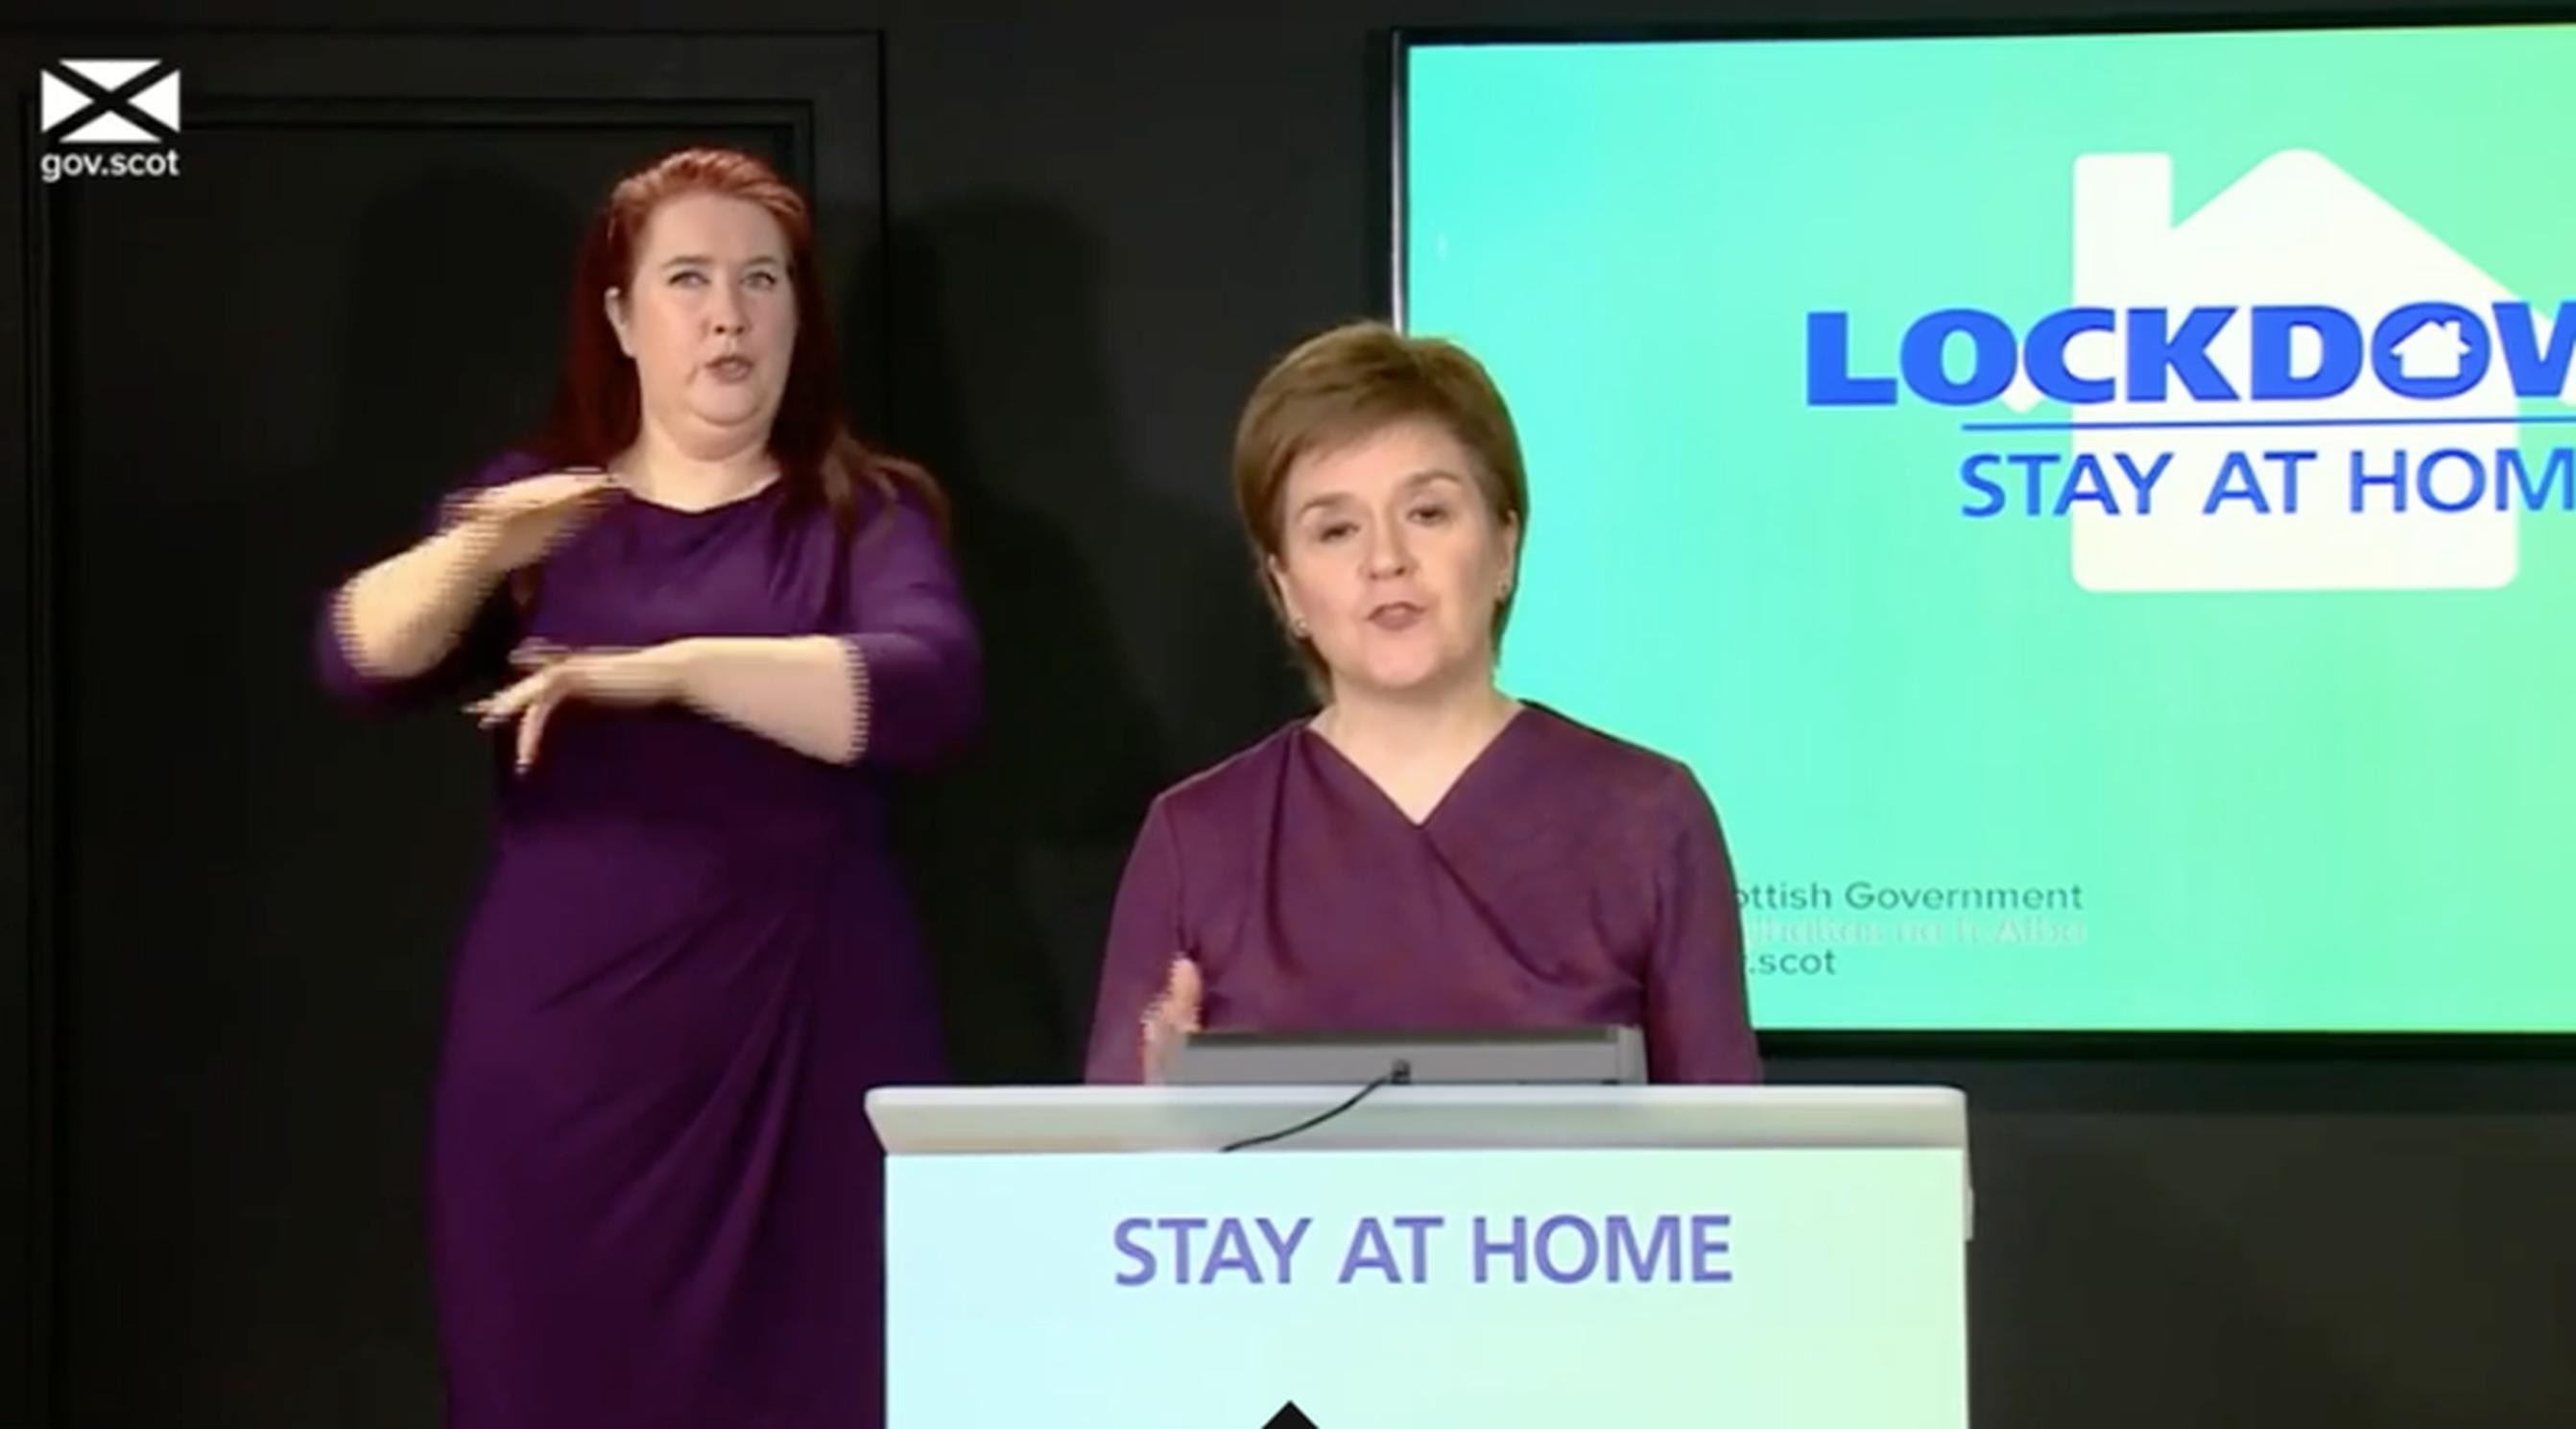 "First Minister Nicola Sturgeon said: ""We have made progress both in suppressing the virus and in vaccination, and therefore the changes I previously indicated will go ahead on 2 and 5 April."